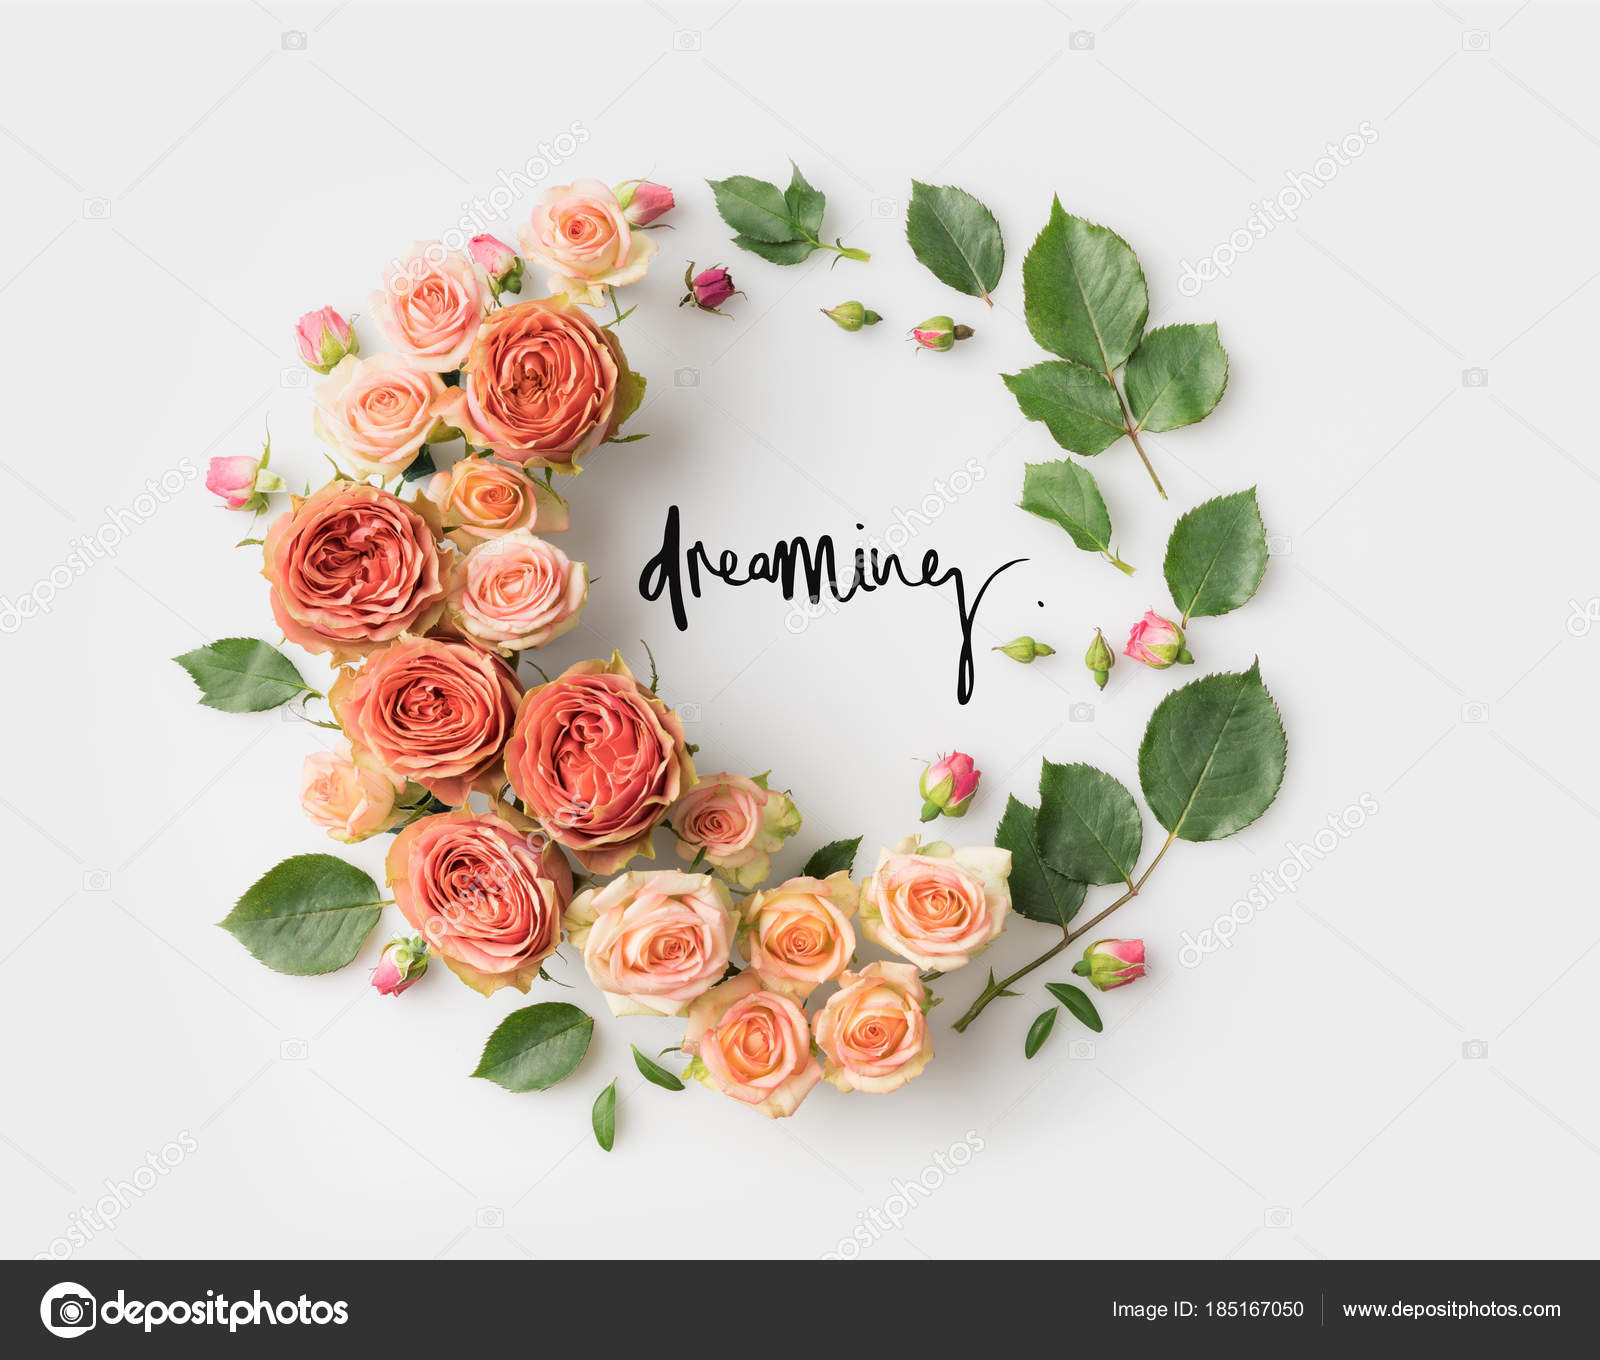 Dreaming Sign Pink Flower Wreath Leaves Buds Petals Isolated White